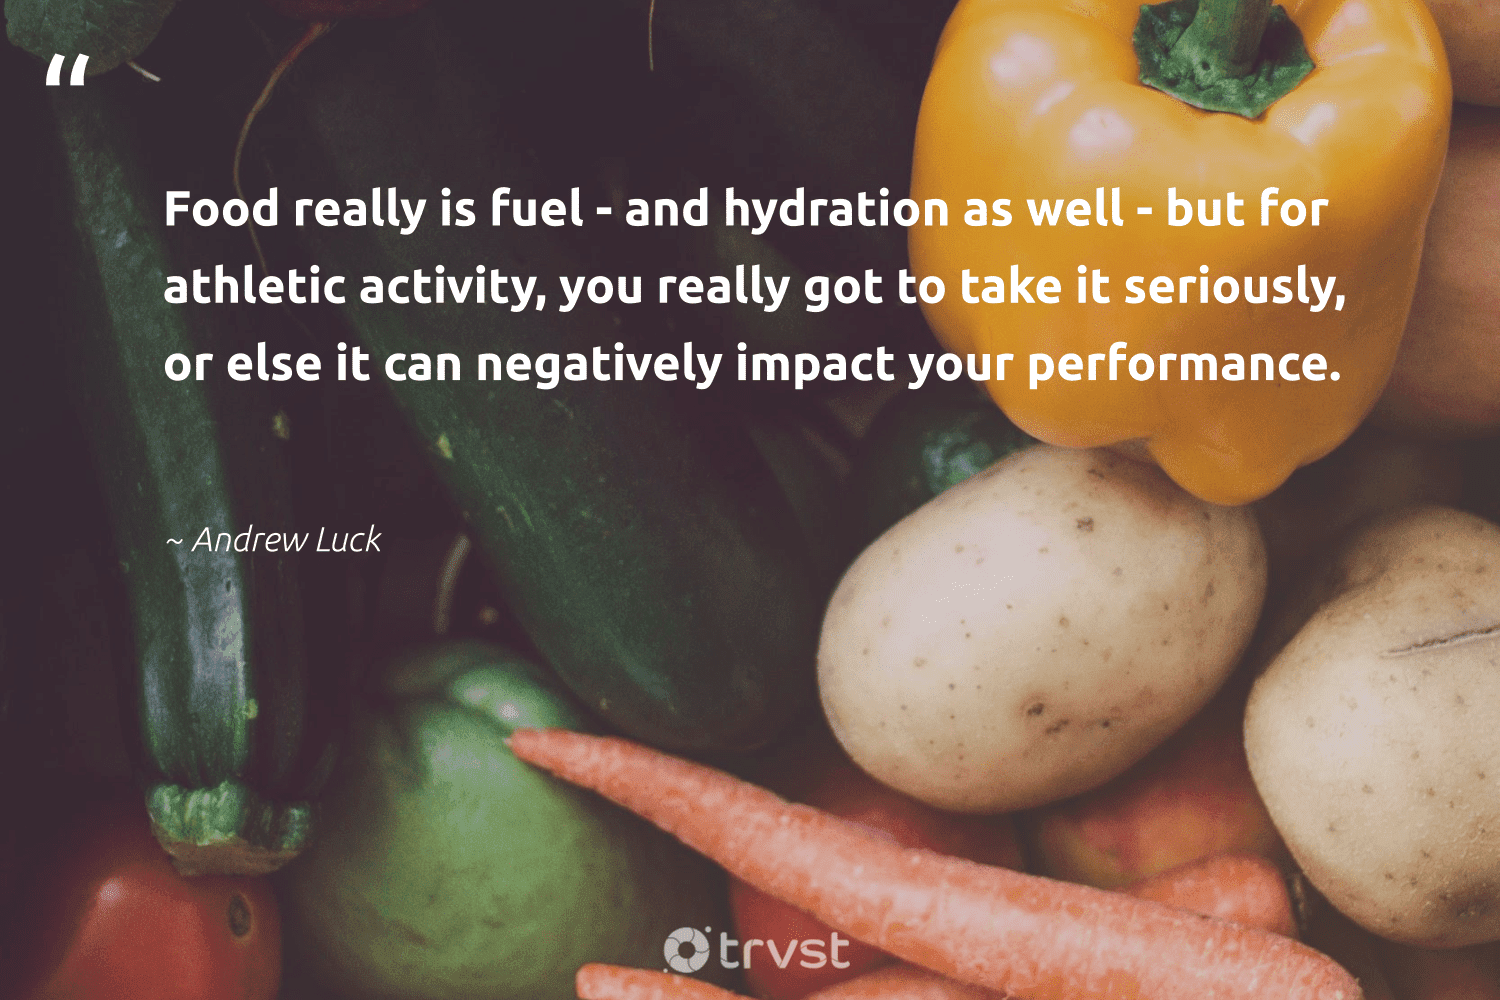 """""""Food really is fuel - and hydration as well - but for athletic activity, you really got to take it seriously, or else it can negatively impact your performance.""""  - Andrew Luck #trvst #quotes #impact #food #foodforthepoor #mindset #weareallone #ecoconscious #hunger #begreat #sustainablefutures #dotherightthing"""